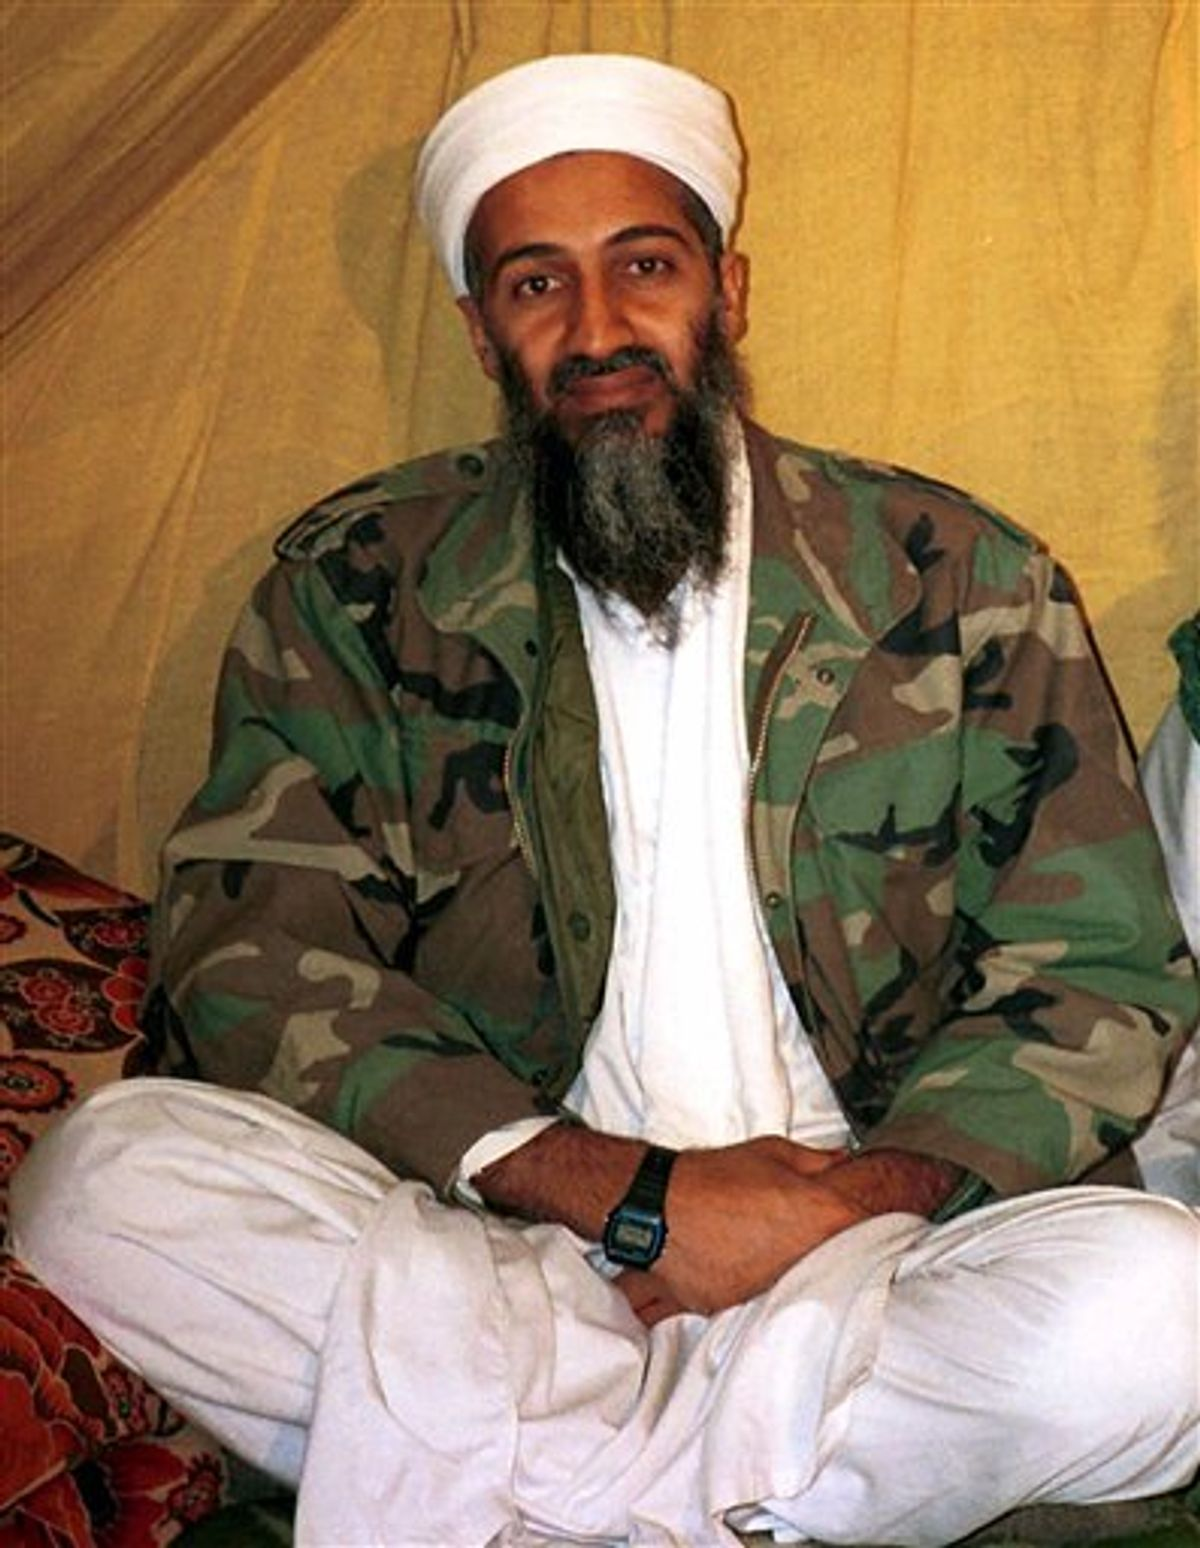 FILE - This is an undated photo of al-Qaida chief Osama bin Laden. Bin Laden issued a new audio message claiming responsibility for the Christmas day bombing attempt in Detroit and vowed further attacks. (AP Photo, File) (AP)